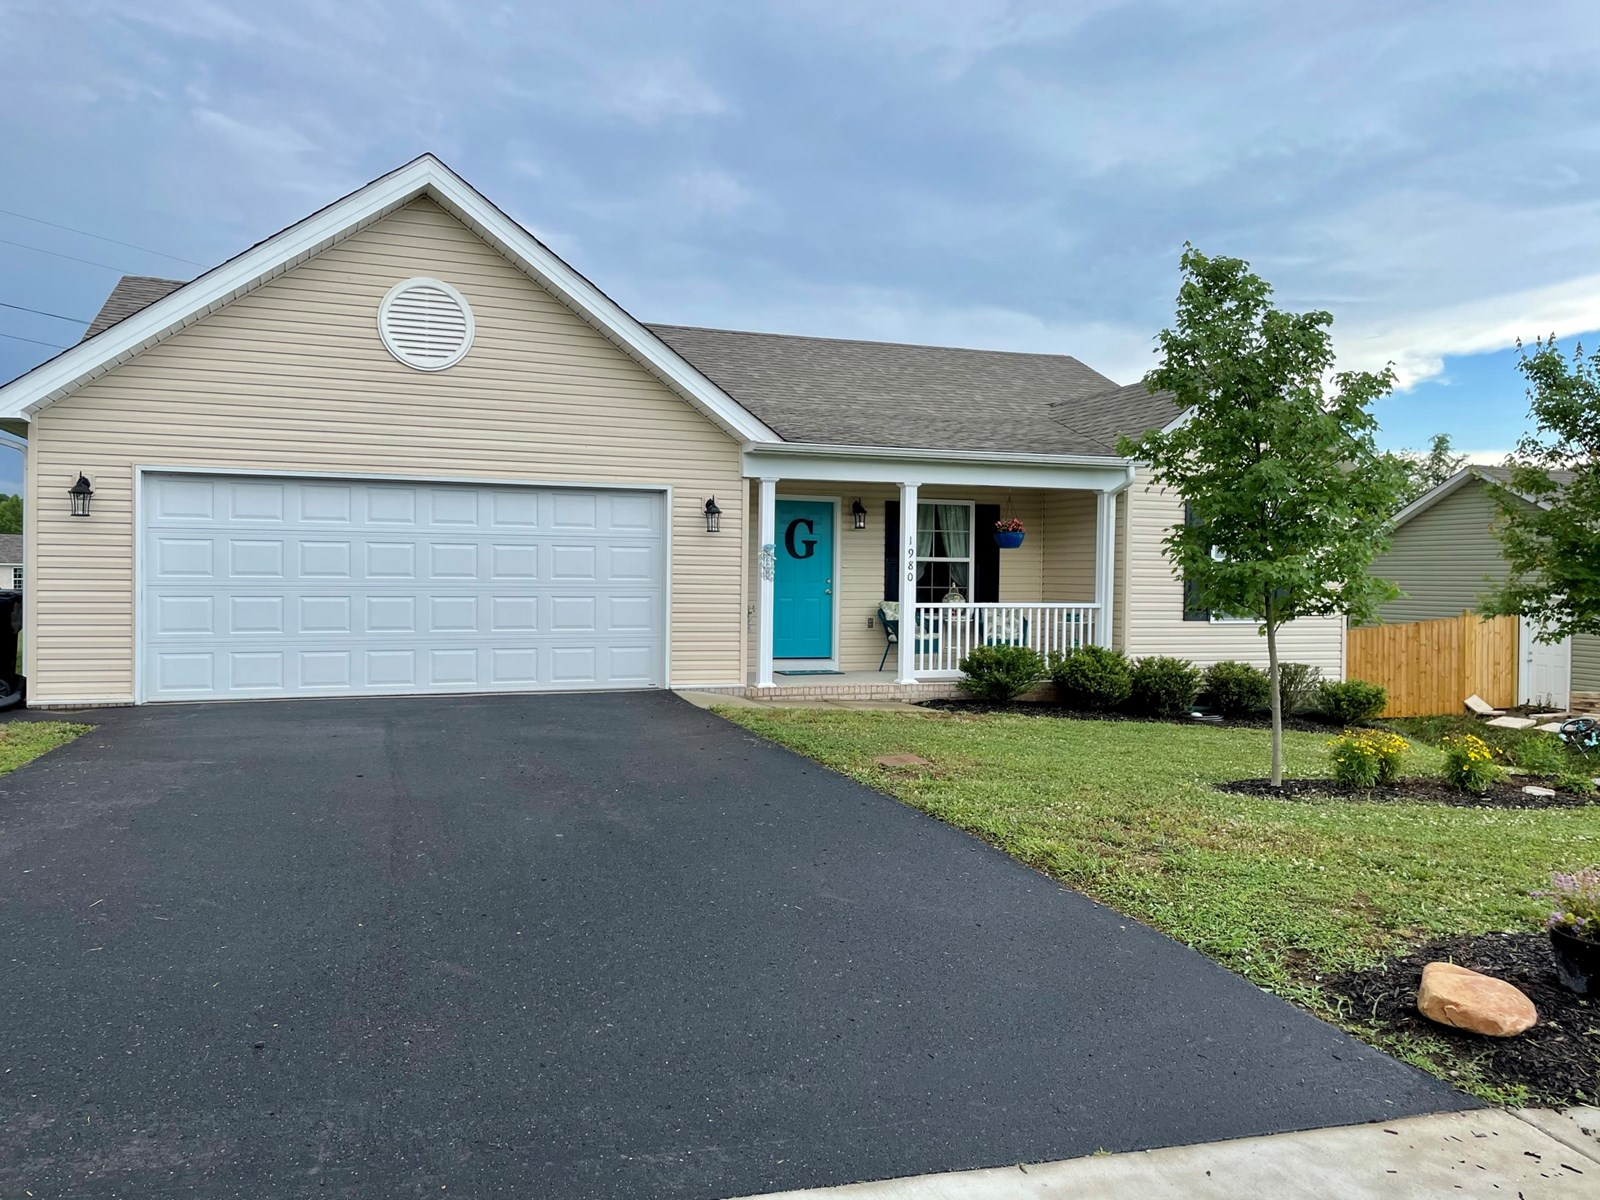 Home for Sale in Armstrong Meadows in Columbia, Tennessee